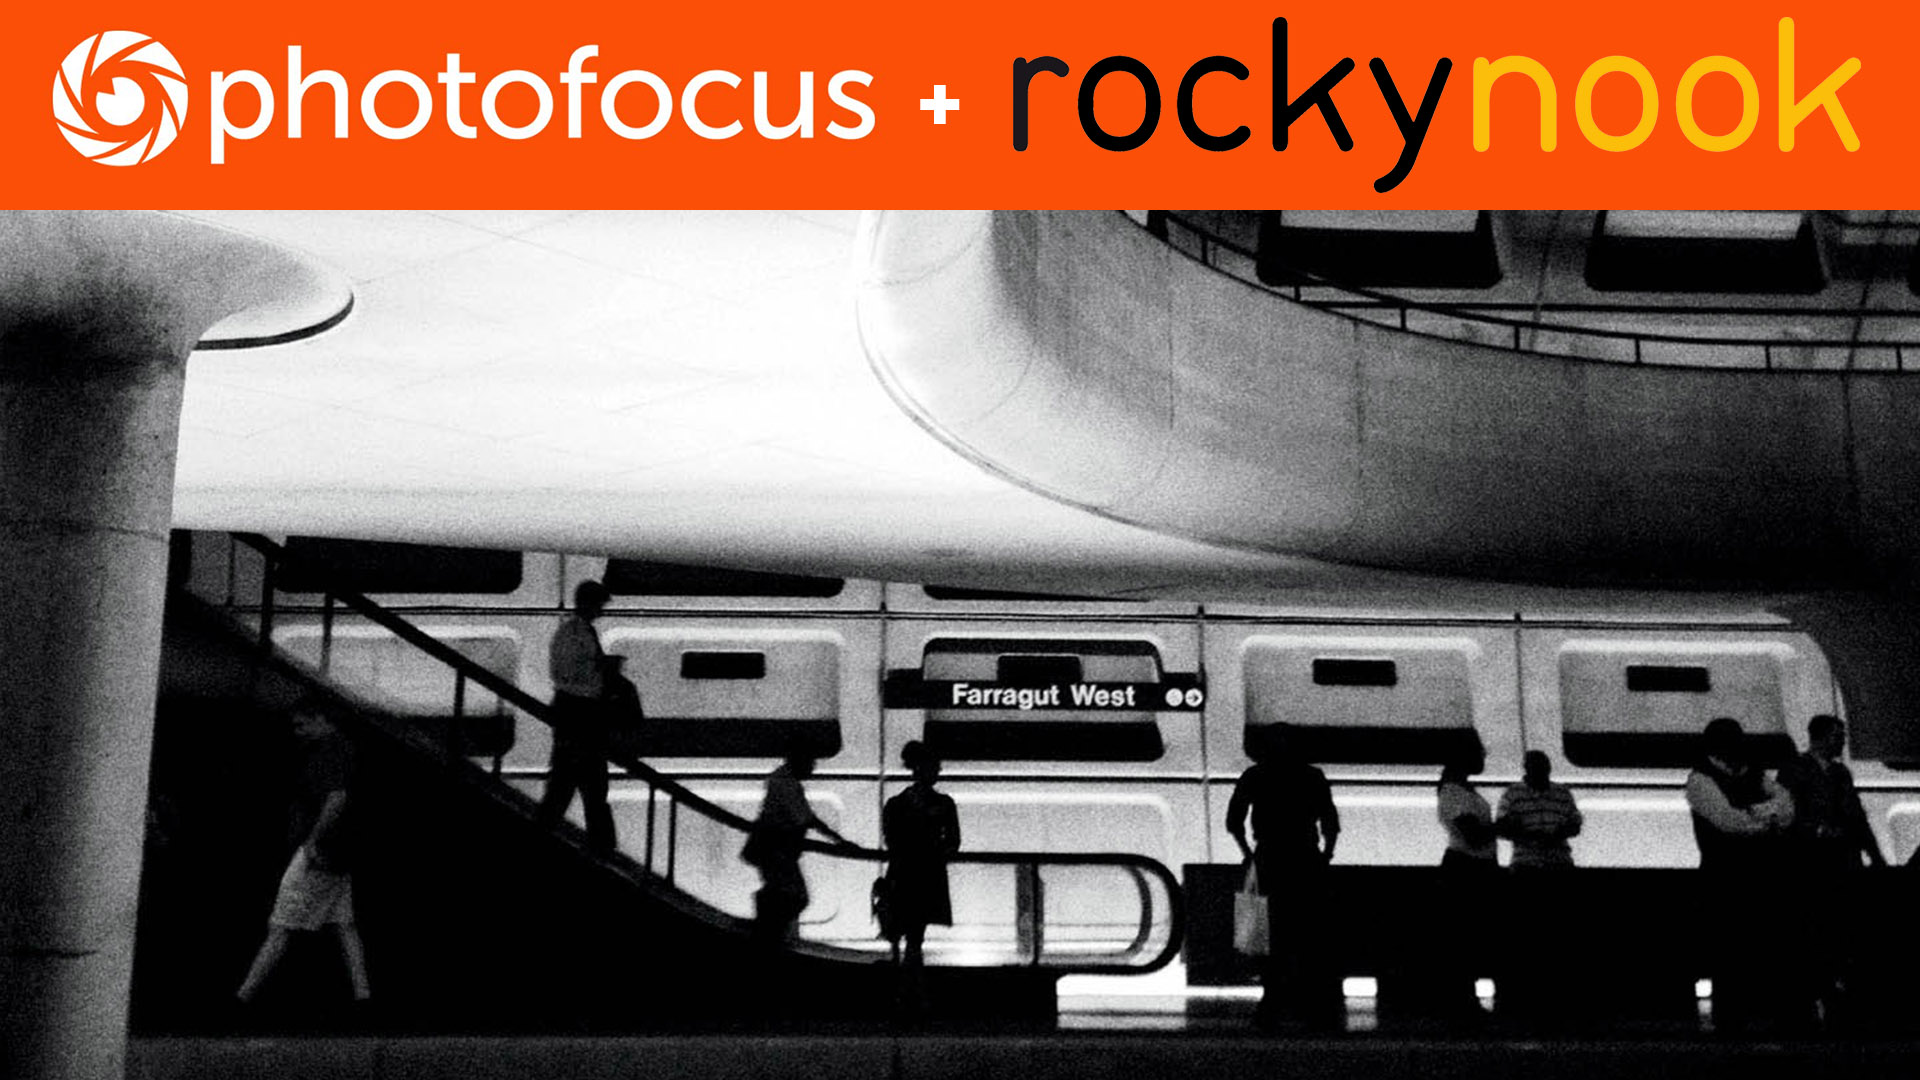 This high-contrast capture of a Washington, D.C., area metro stop adds drama and interest to an otherwise common scene.